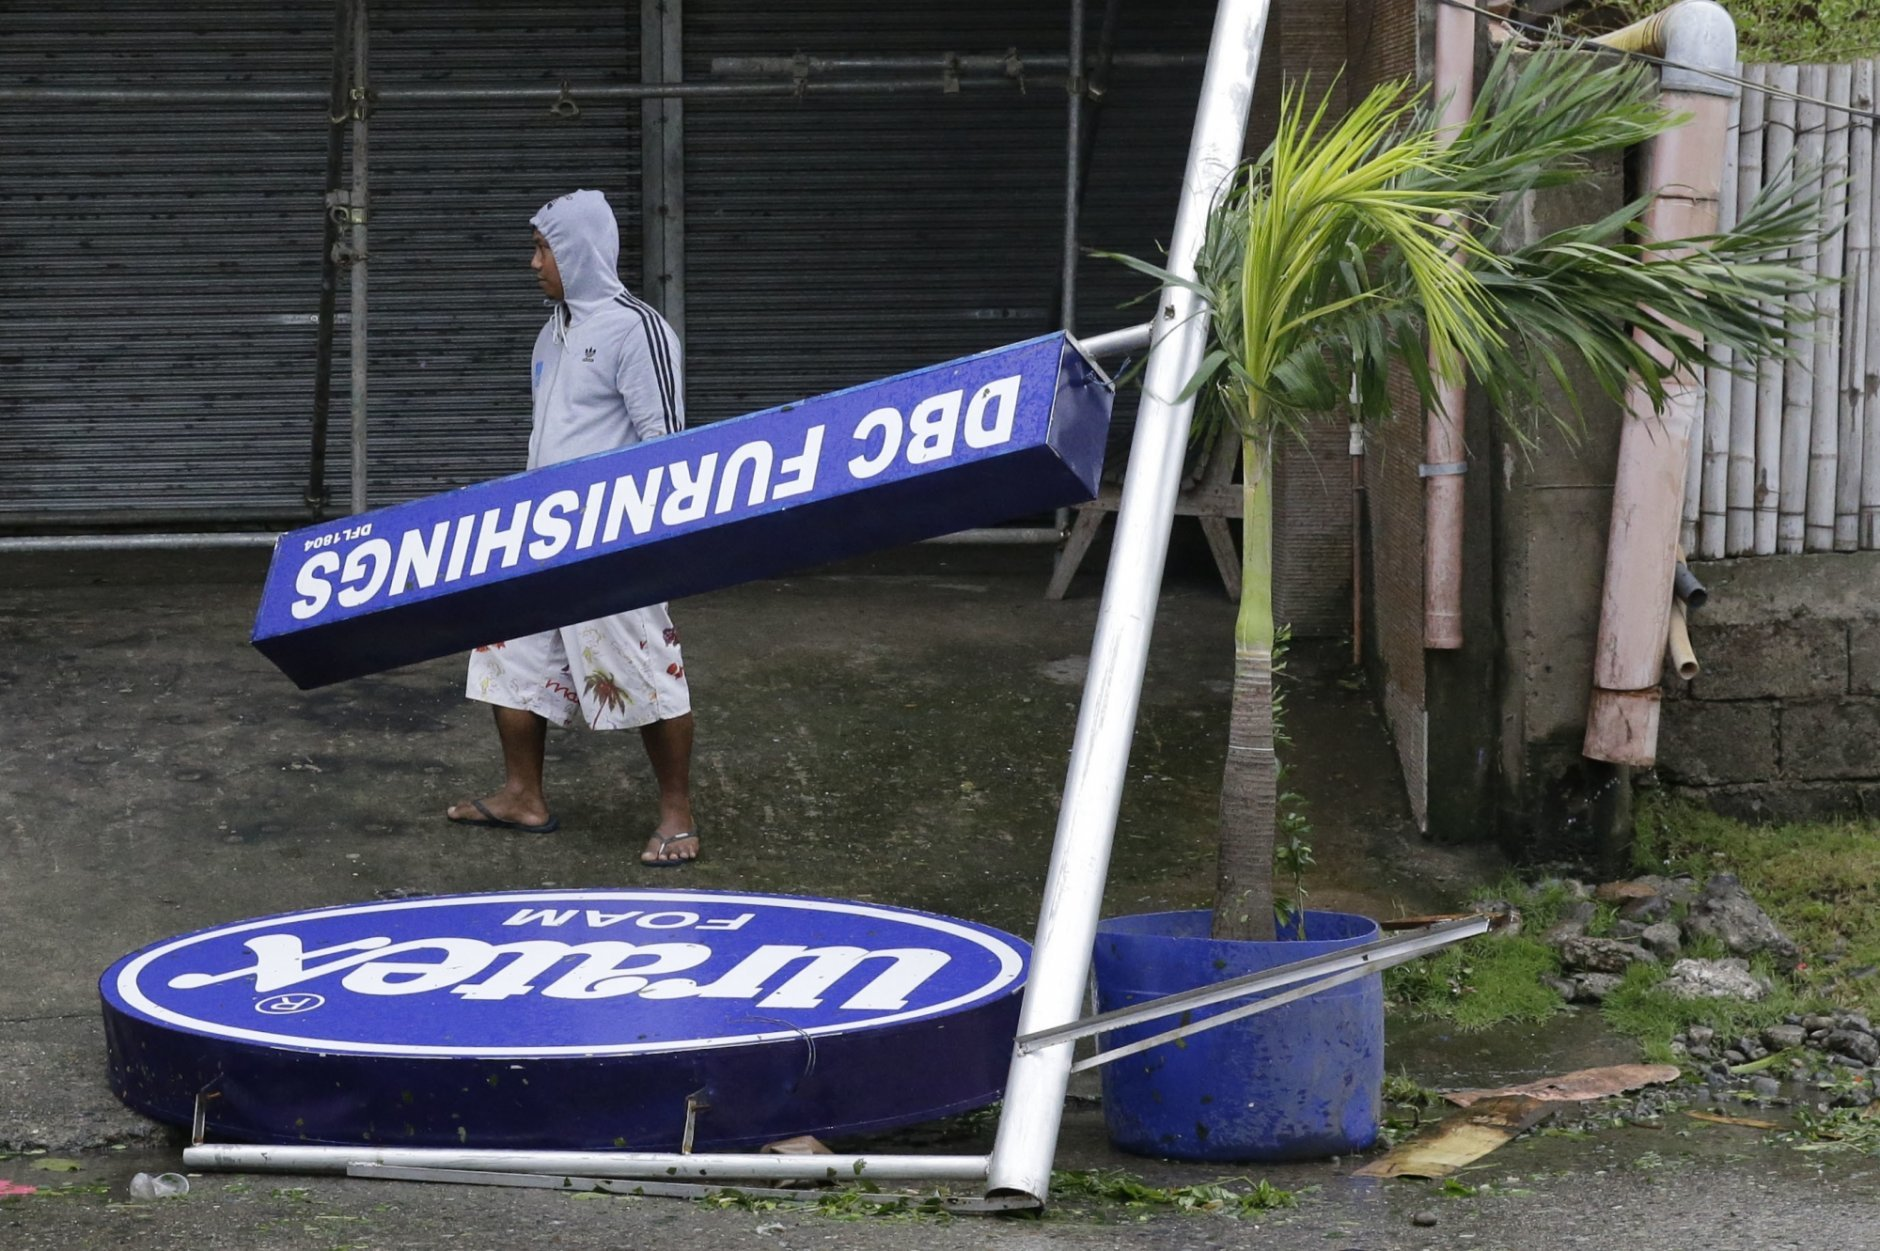 A resident walks beside a sign toppled by strong winds from Typhoon Mangkhut as it barreled across Tuguegarao city in Cagayan province, northeastern Philippines on Saturday, Sept. 15, 2018. The typhoon slammed into the Philippines northeastern coast early Saturday, it's ferocious winds and blinding rain ripping off tin roof sheets and knocking out power, and plowed through the agricultural region at the start of the onslaught. (AP Photo/Aaron Favila)